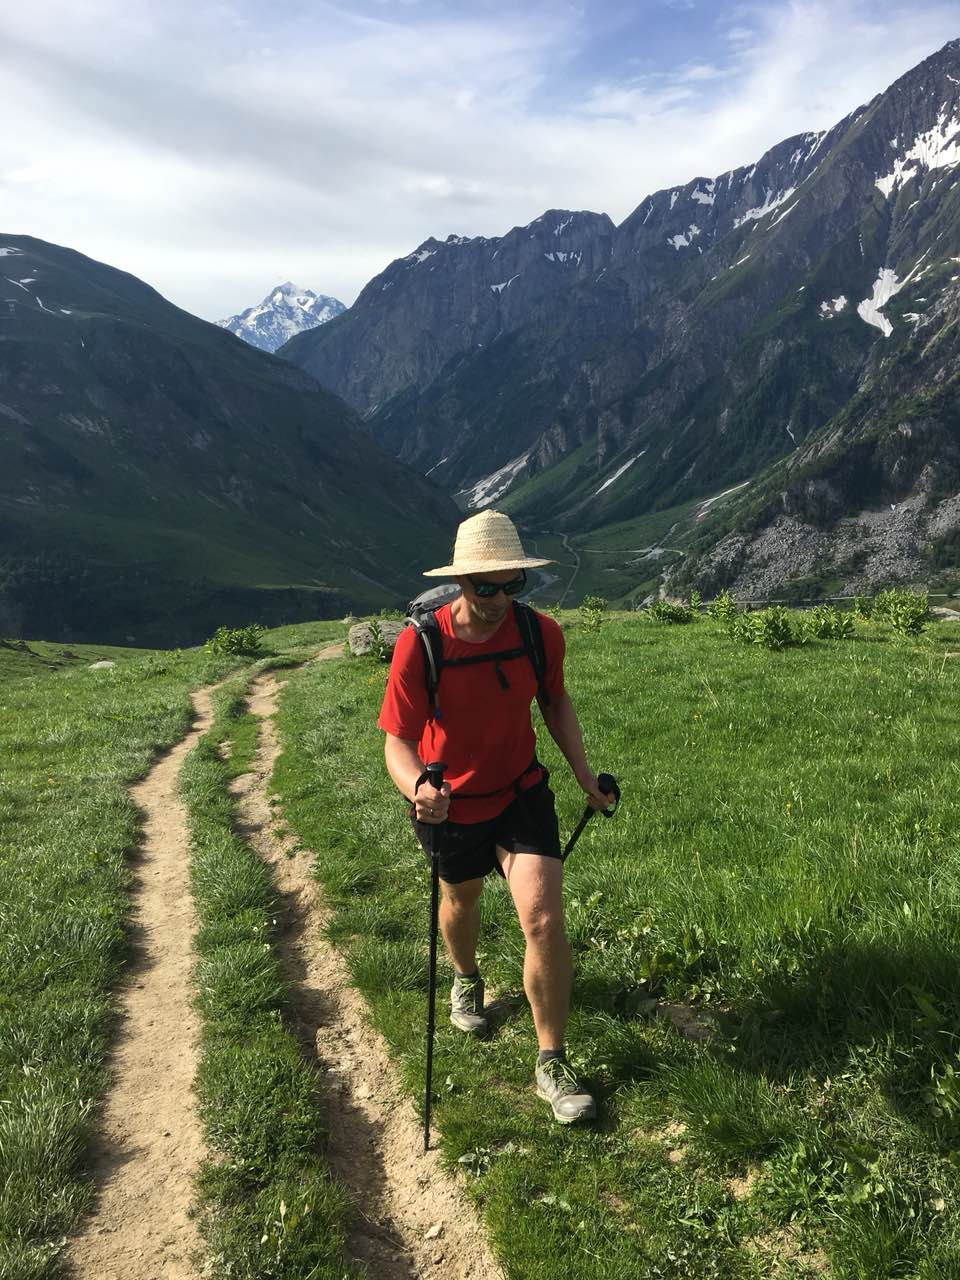 Tour du Mont Blanc:  Hikers of all shapes and sizes complete the trail each year. Choose a plan that gives you the right mix of physical challenge and mindfullness. Oh, and bring a good hat!